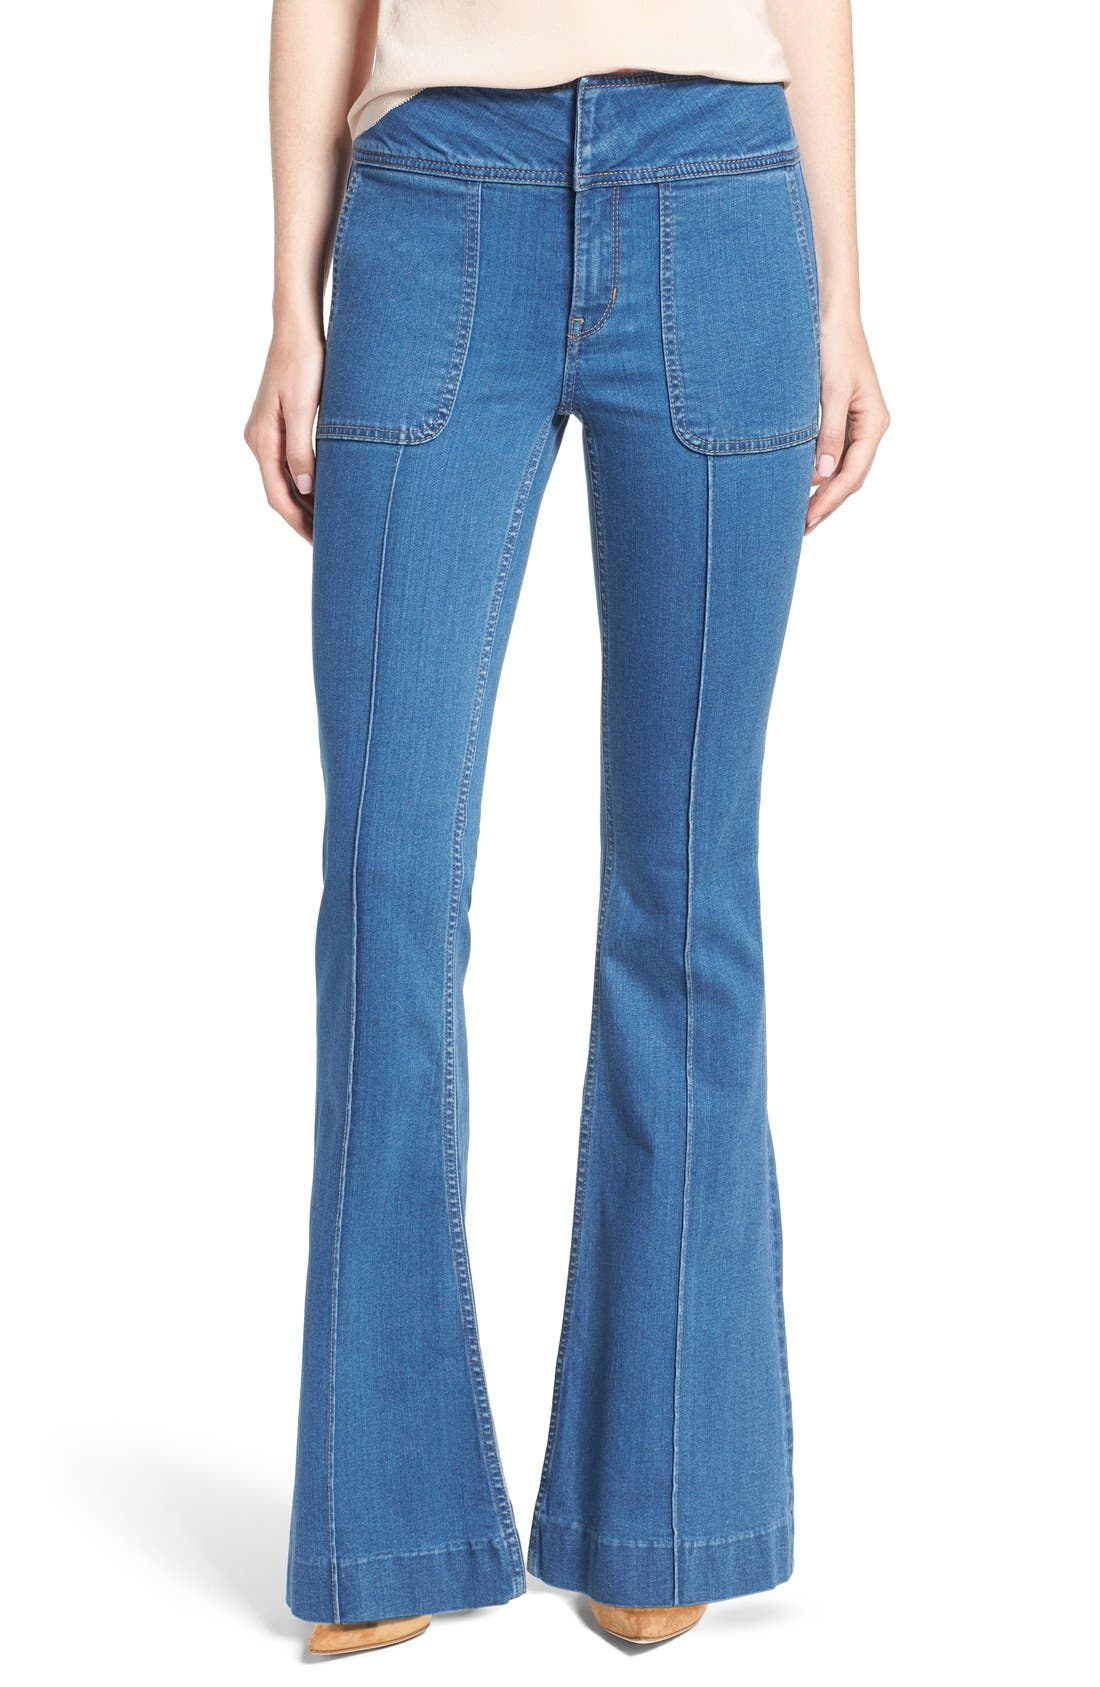 Main Image - Olivia Palermo + Chelsea28 High Rise Flare Jeans (Mode Lt Rinse)